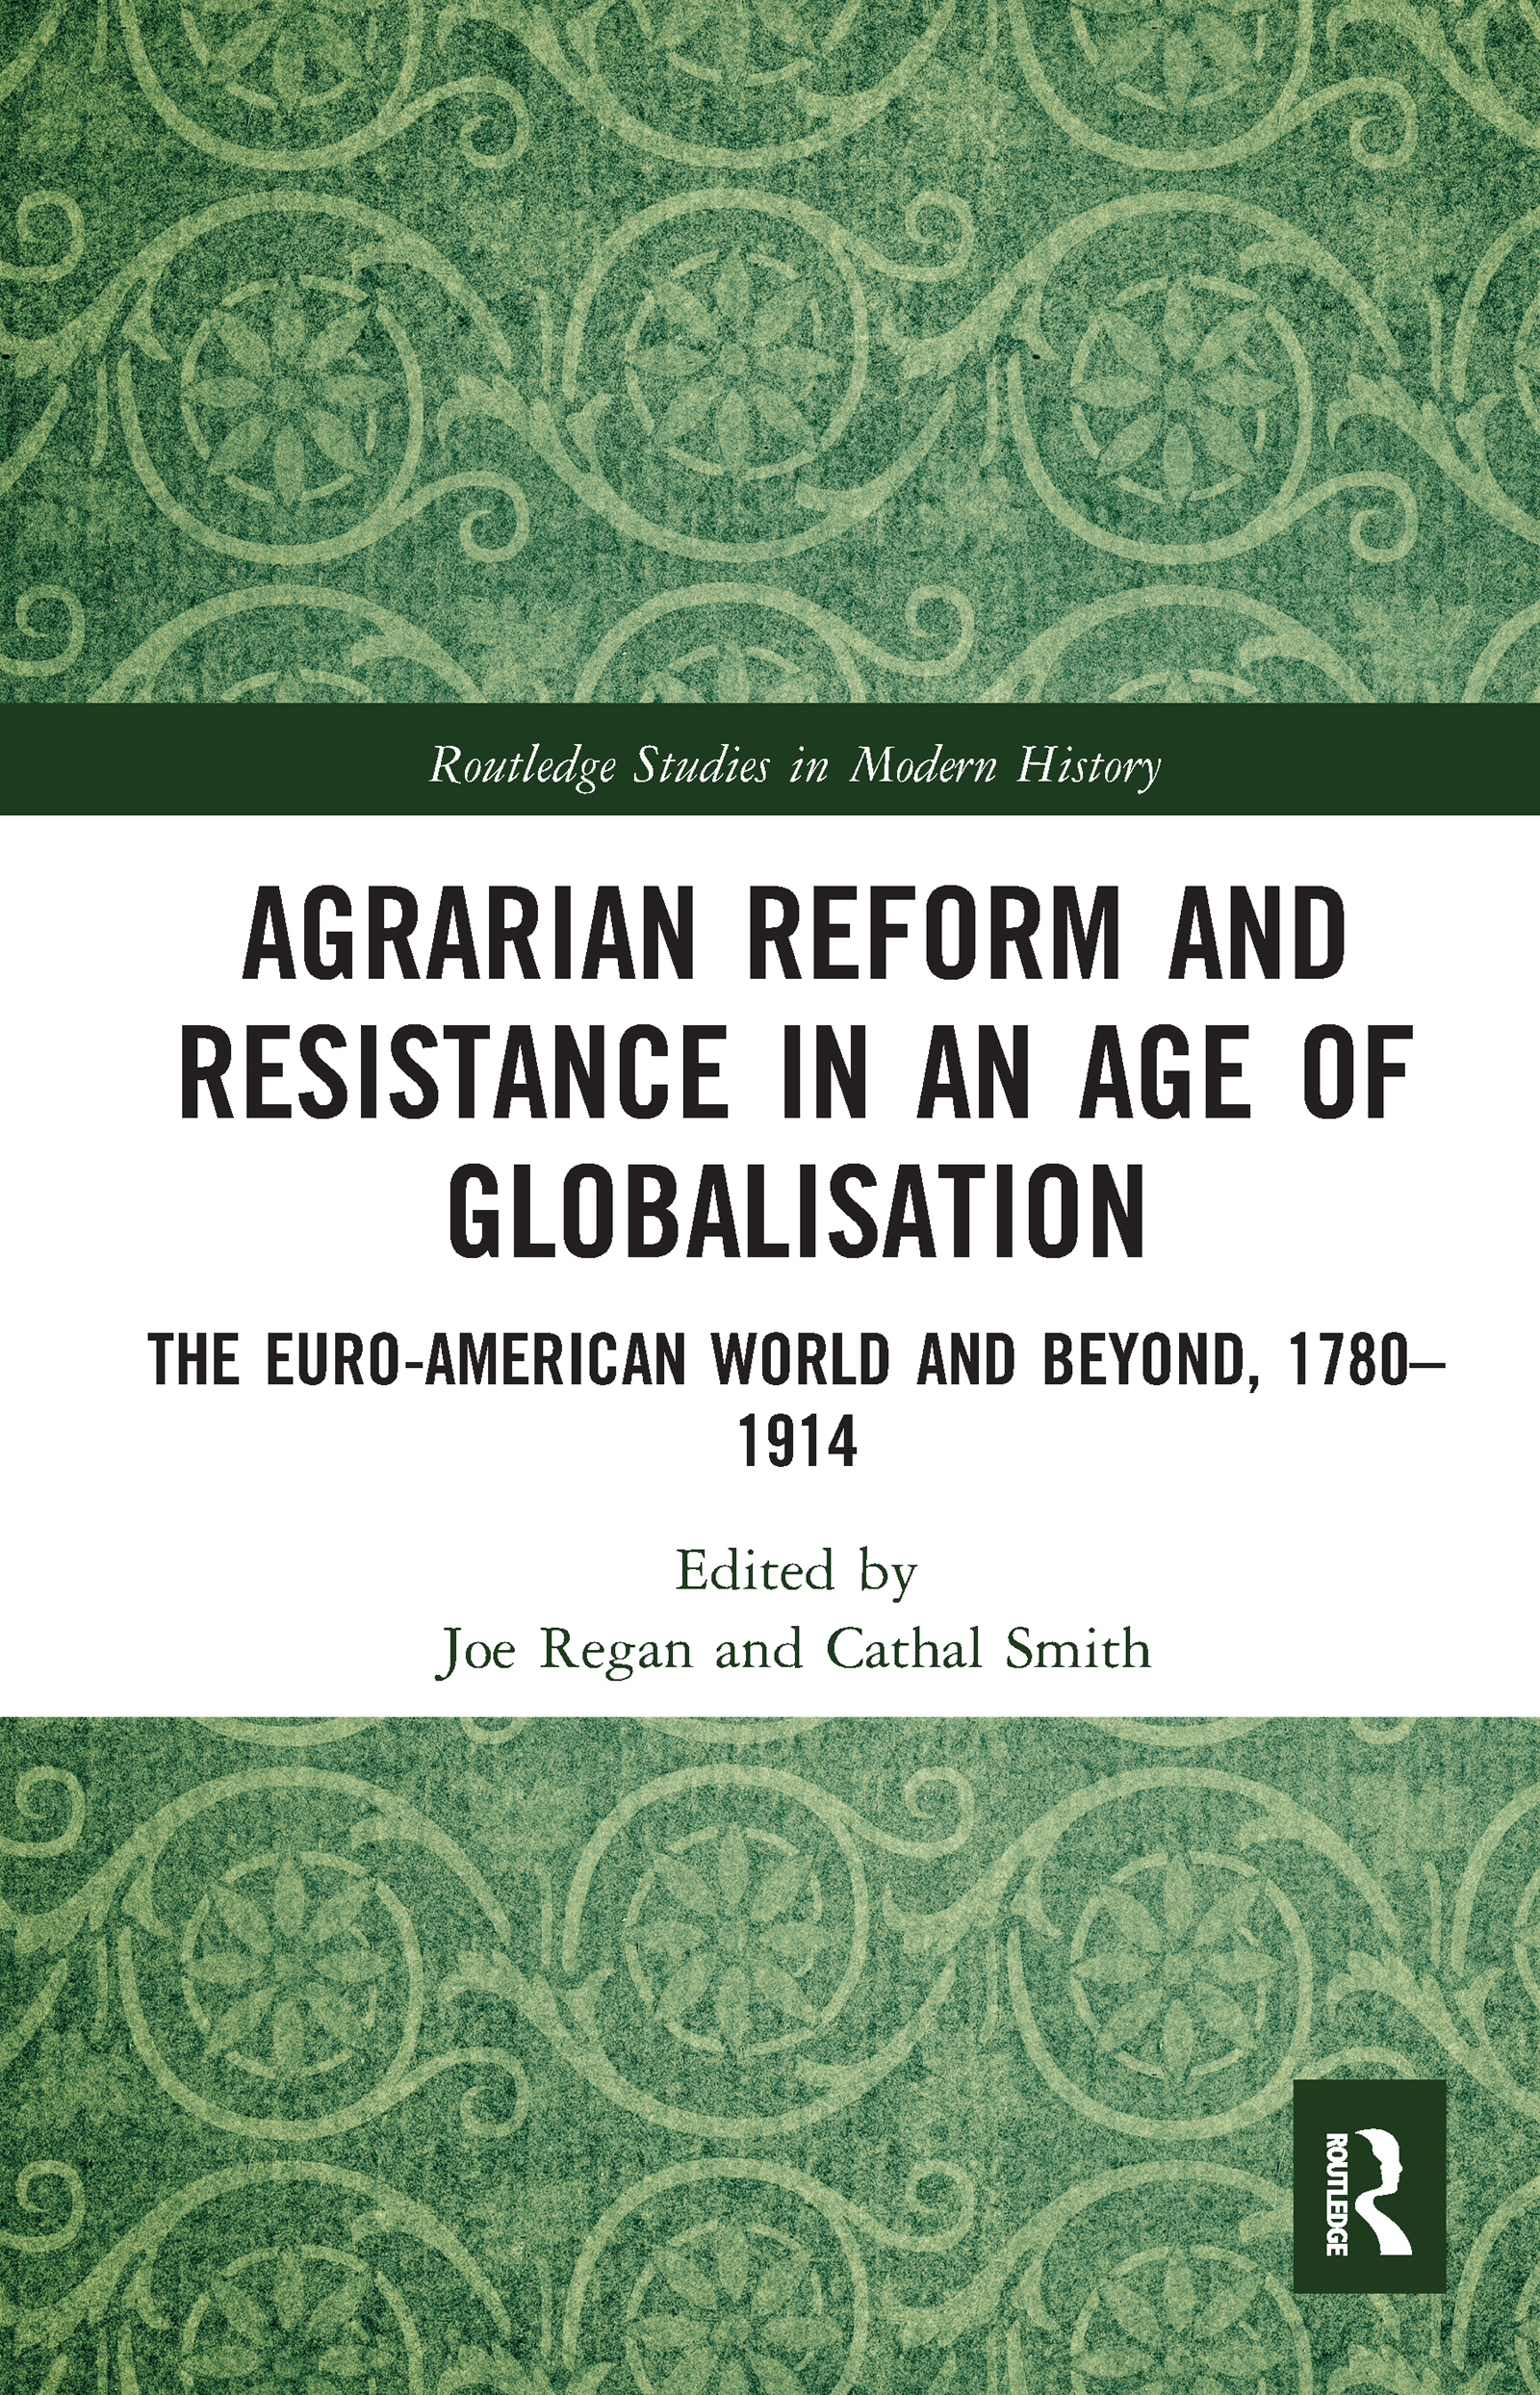 Agrarian Reform and Resistance in an Age of Globalisation